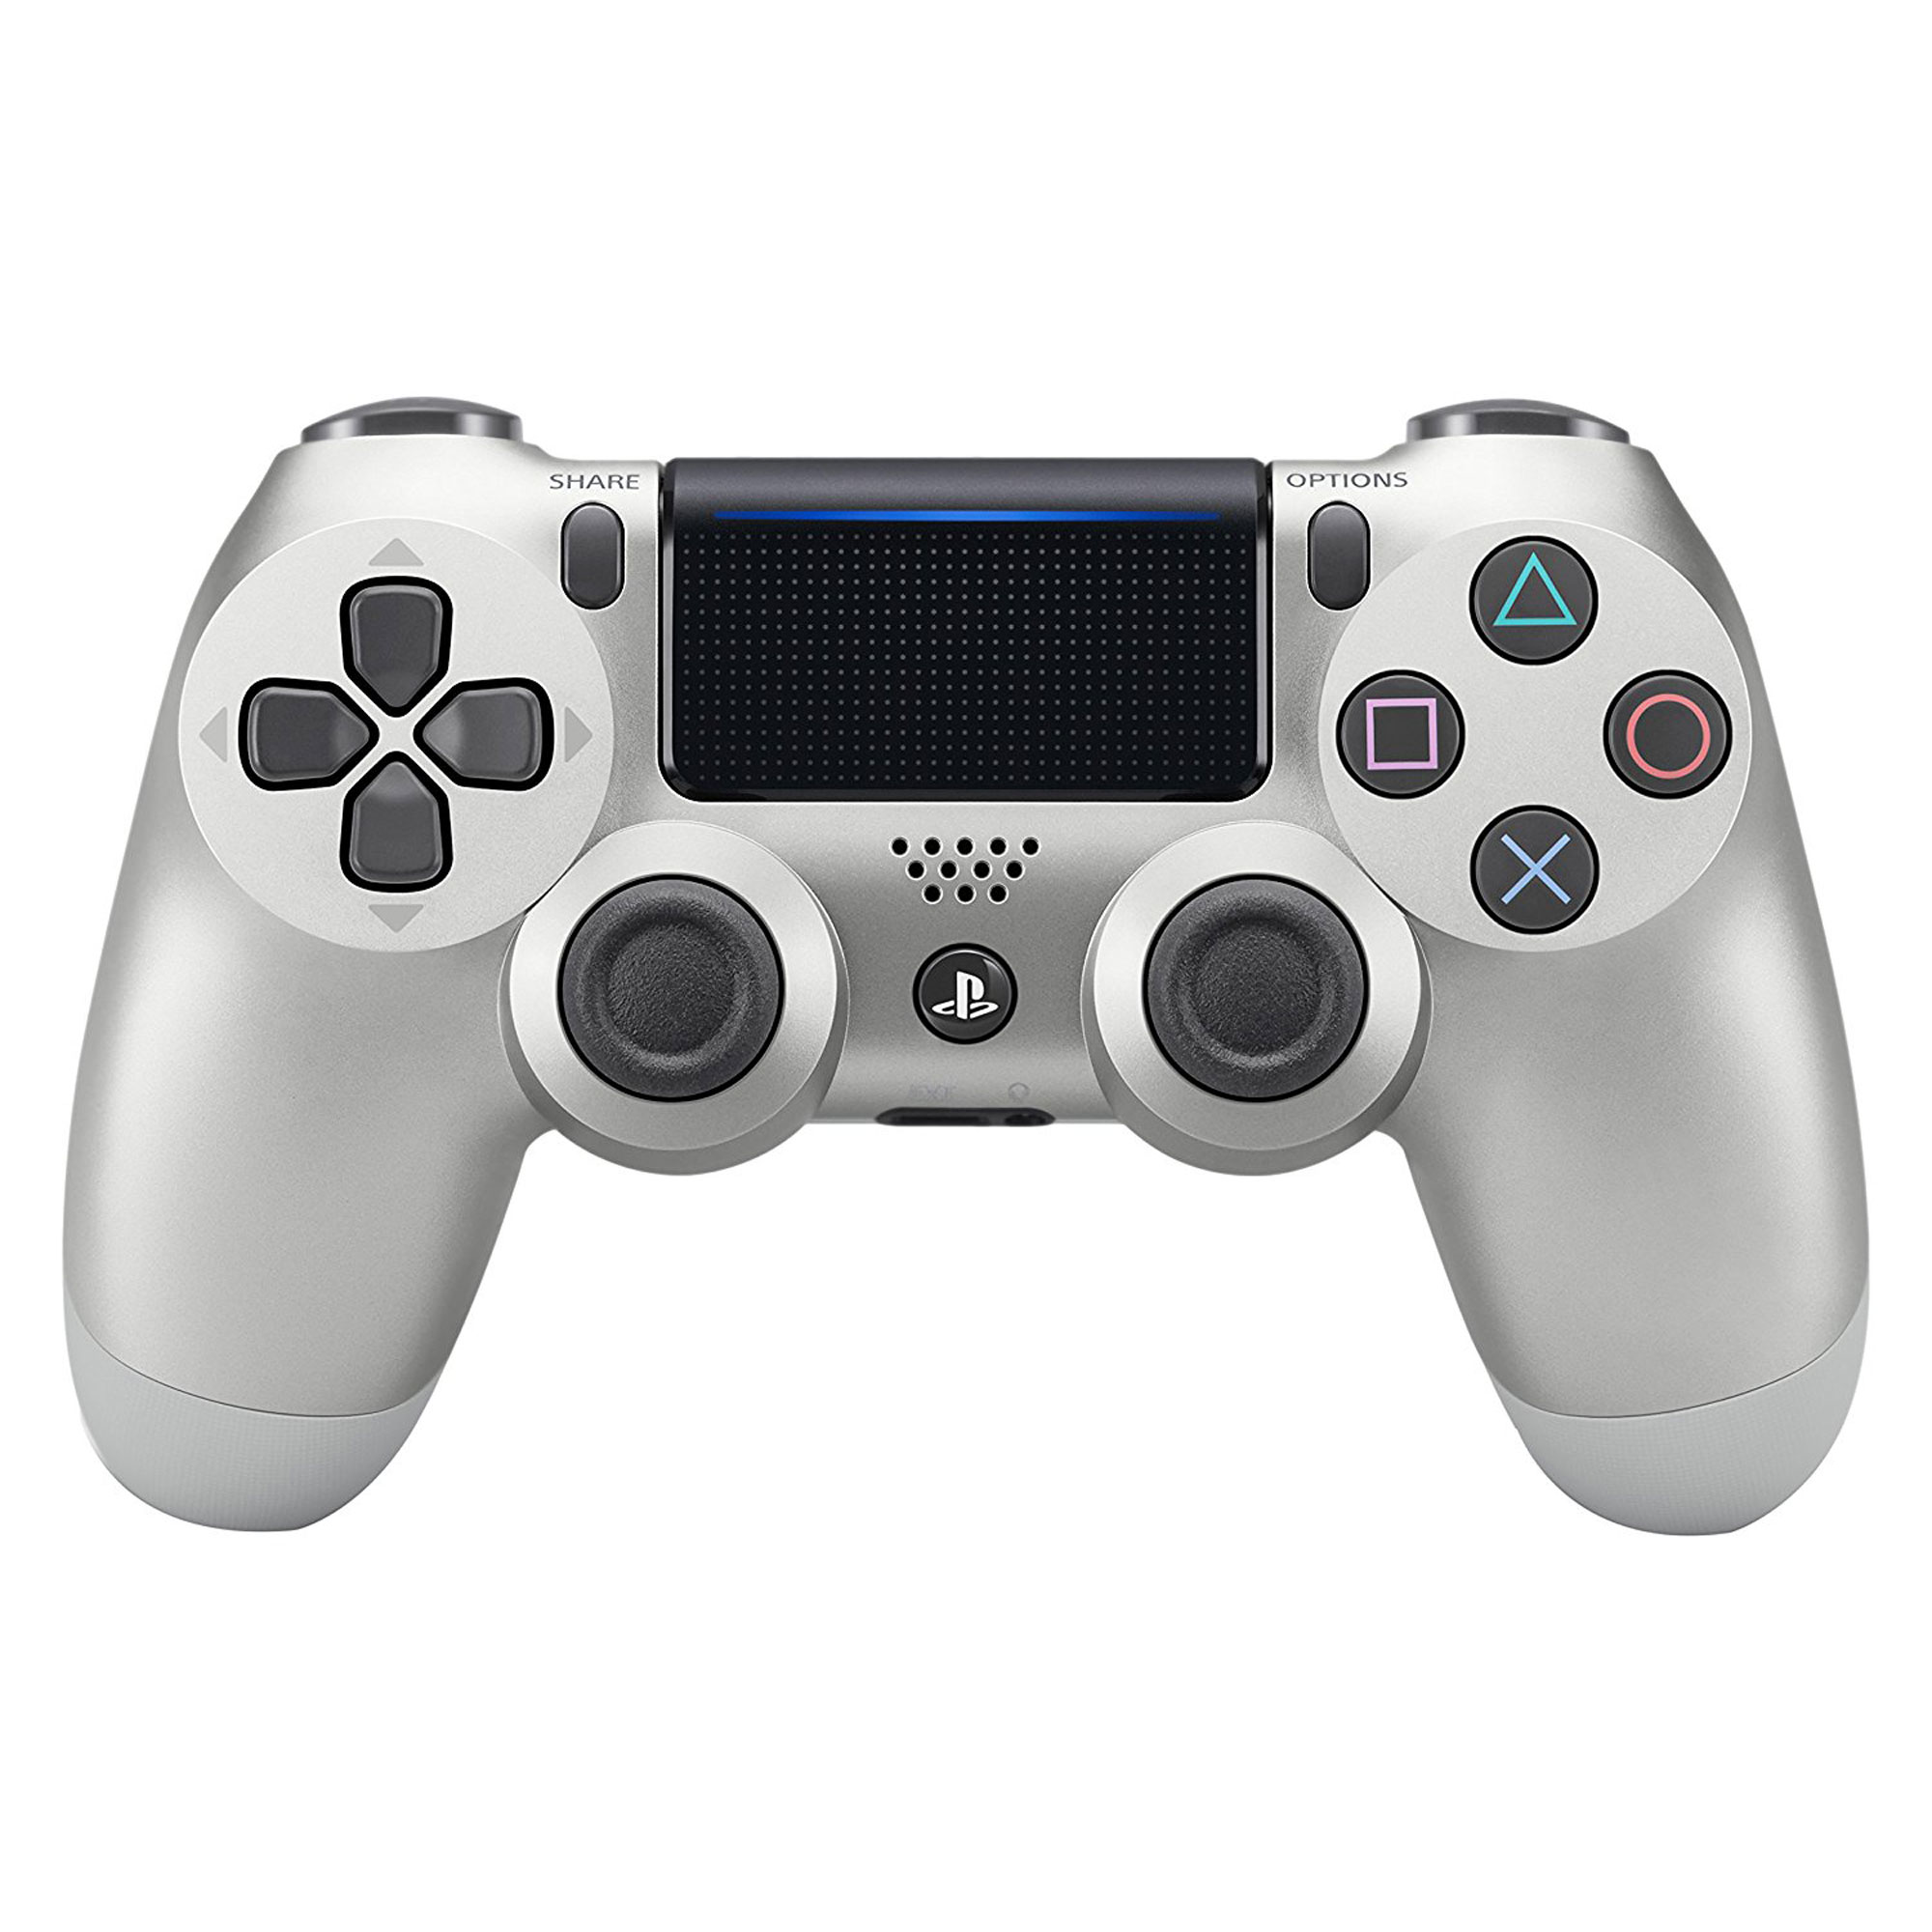 Silver Playstation 4 Controller Pad AKA PS4 Silver Dualshock 4 Style Controller